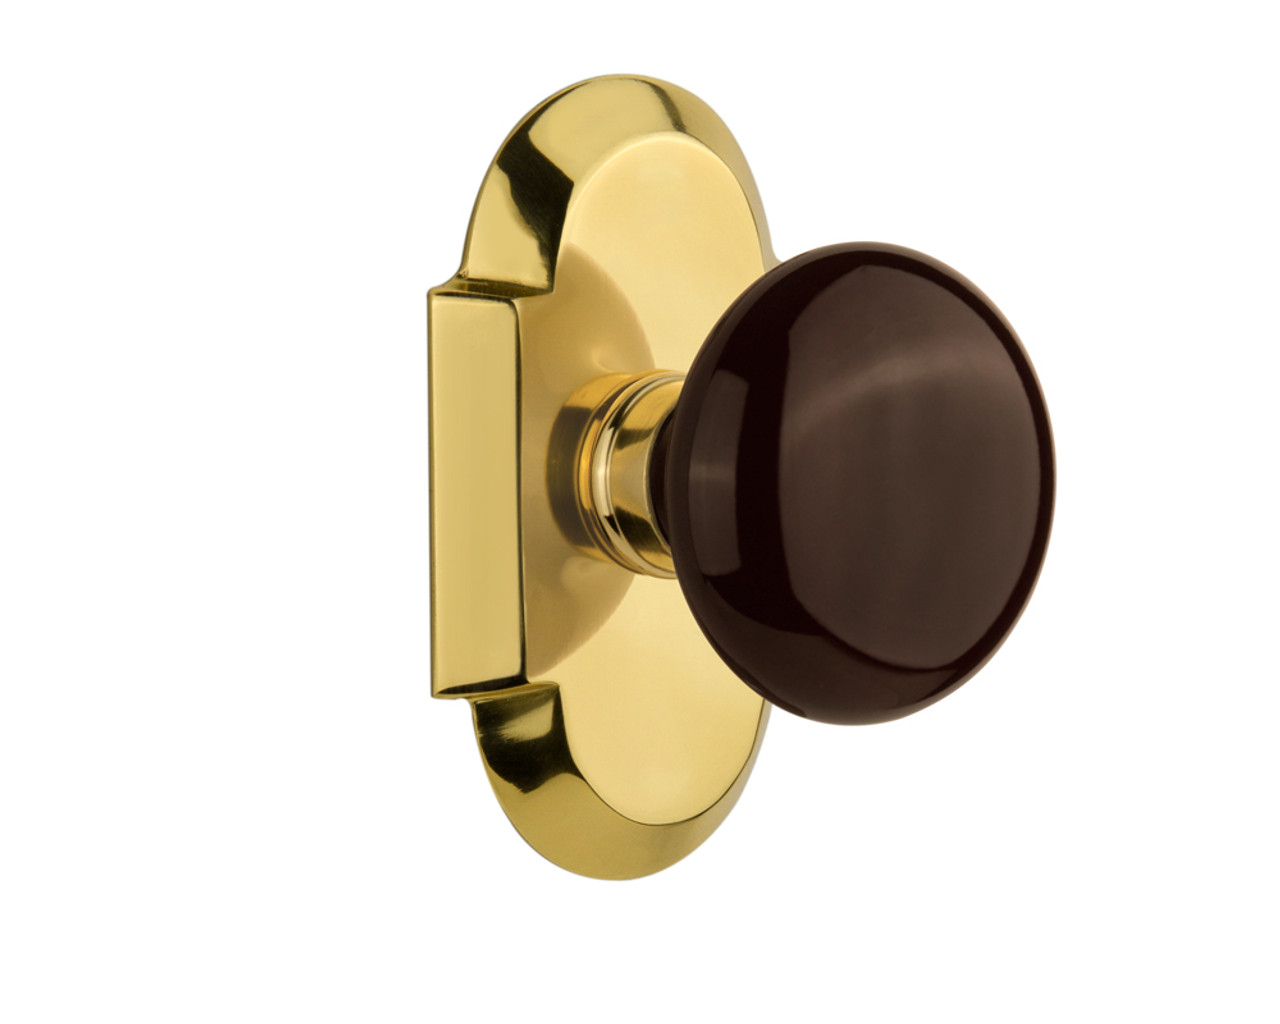 Nostalgic Warehouse Cottage Plate Double Dummy Brown Porcelain Door Knob in Polished Brass (NW-713174)